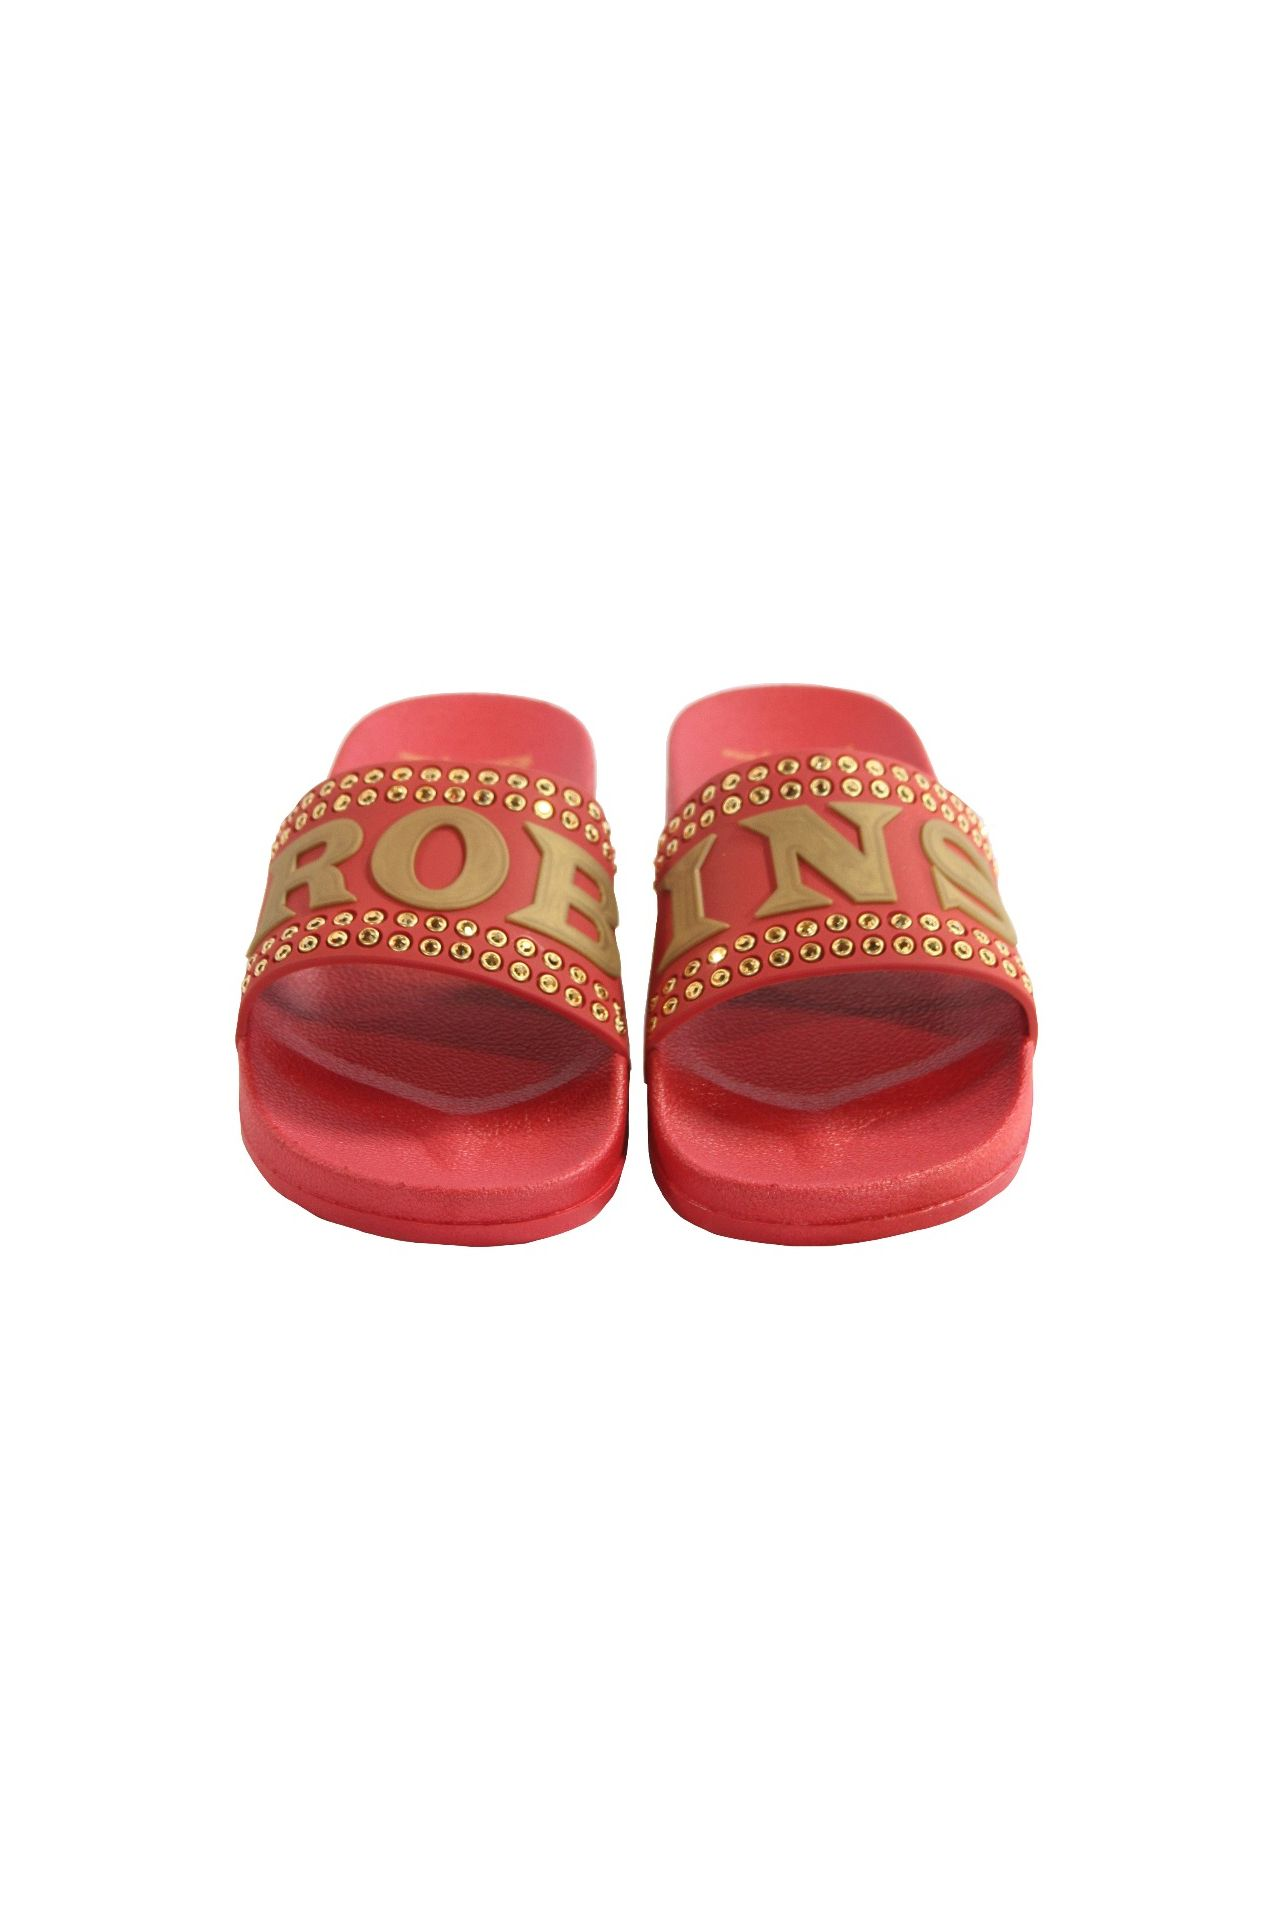 ROBIN SLIDES IN RED WITH GOLD CRYSTALS